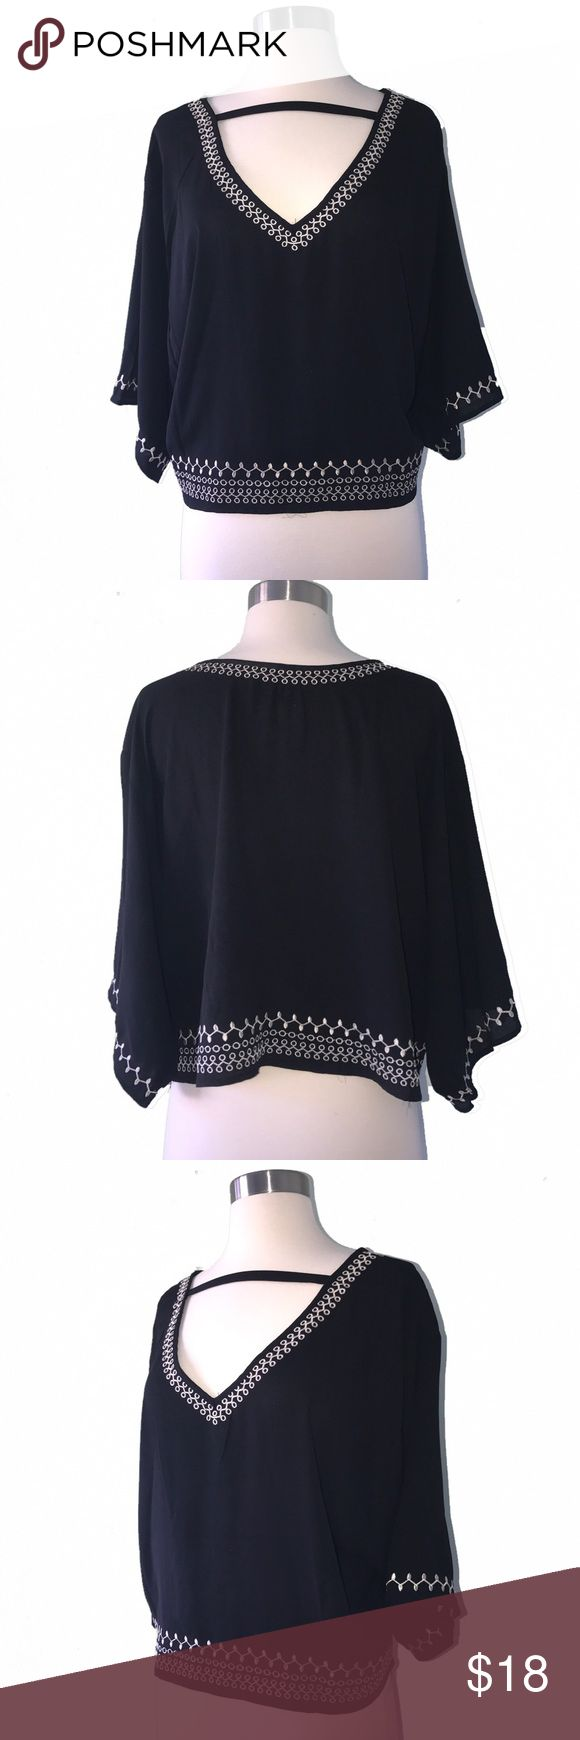 Monteau Embroidered Black + Silver Blouse Medium Black & silver Embroidered chiffon like Blouse by Monteau in size Medium. Excellent Condition. 100% polyester. Tops Blouses